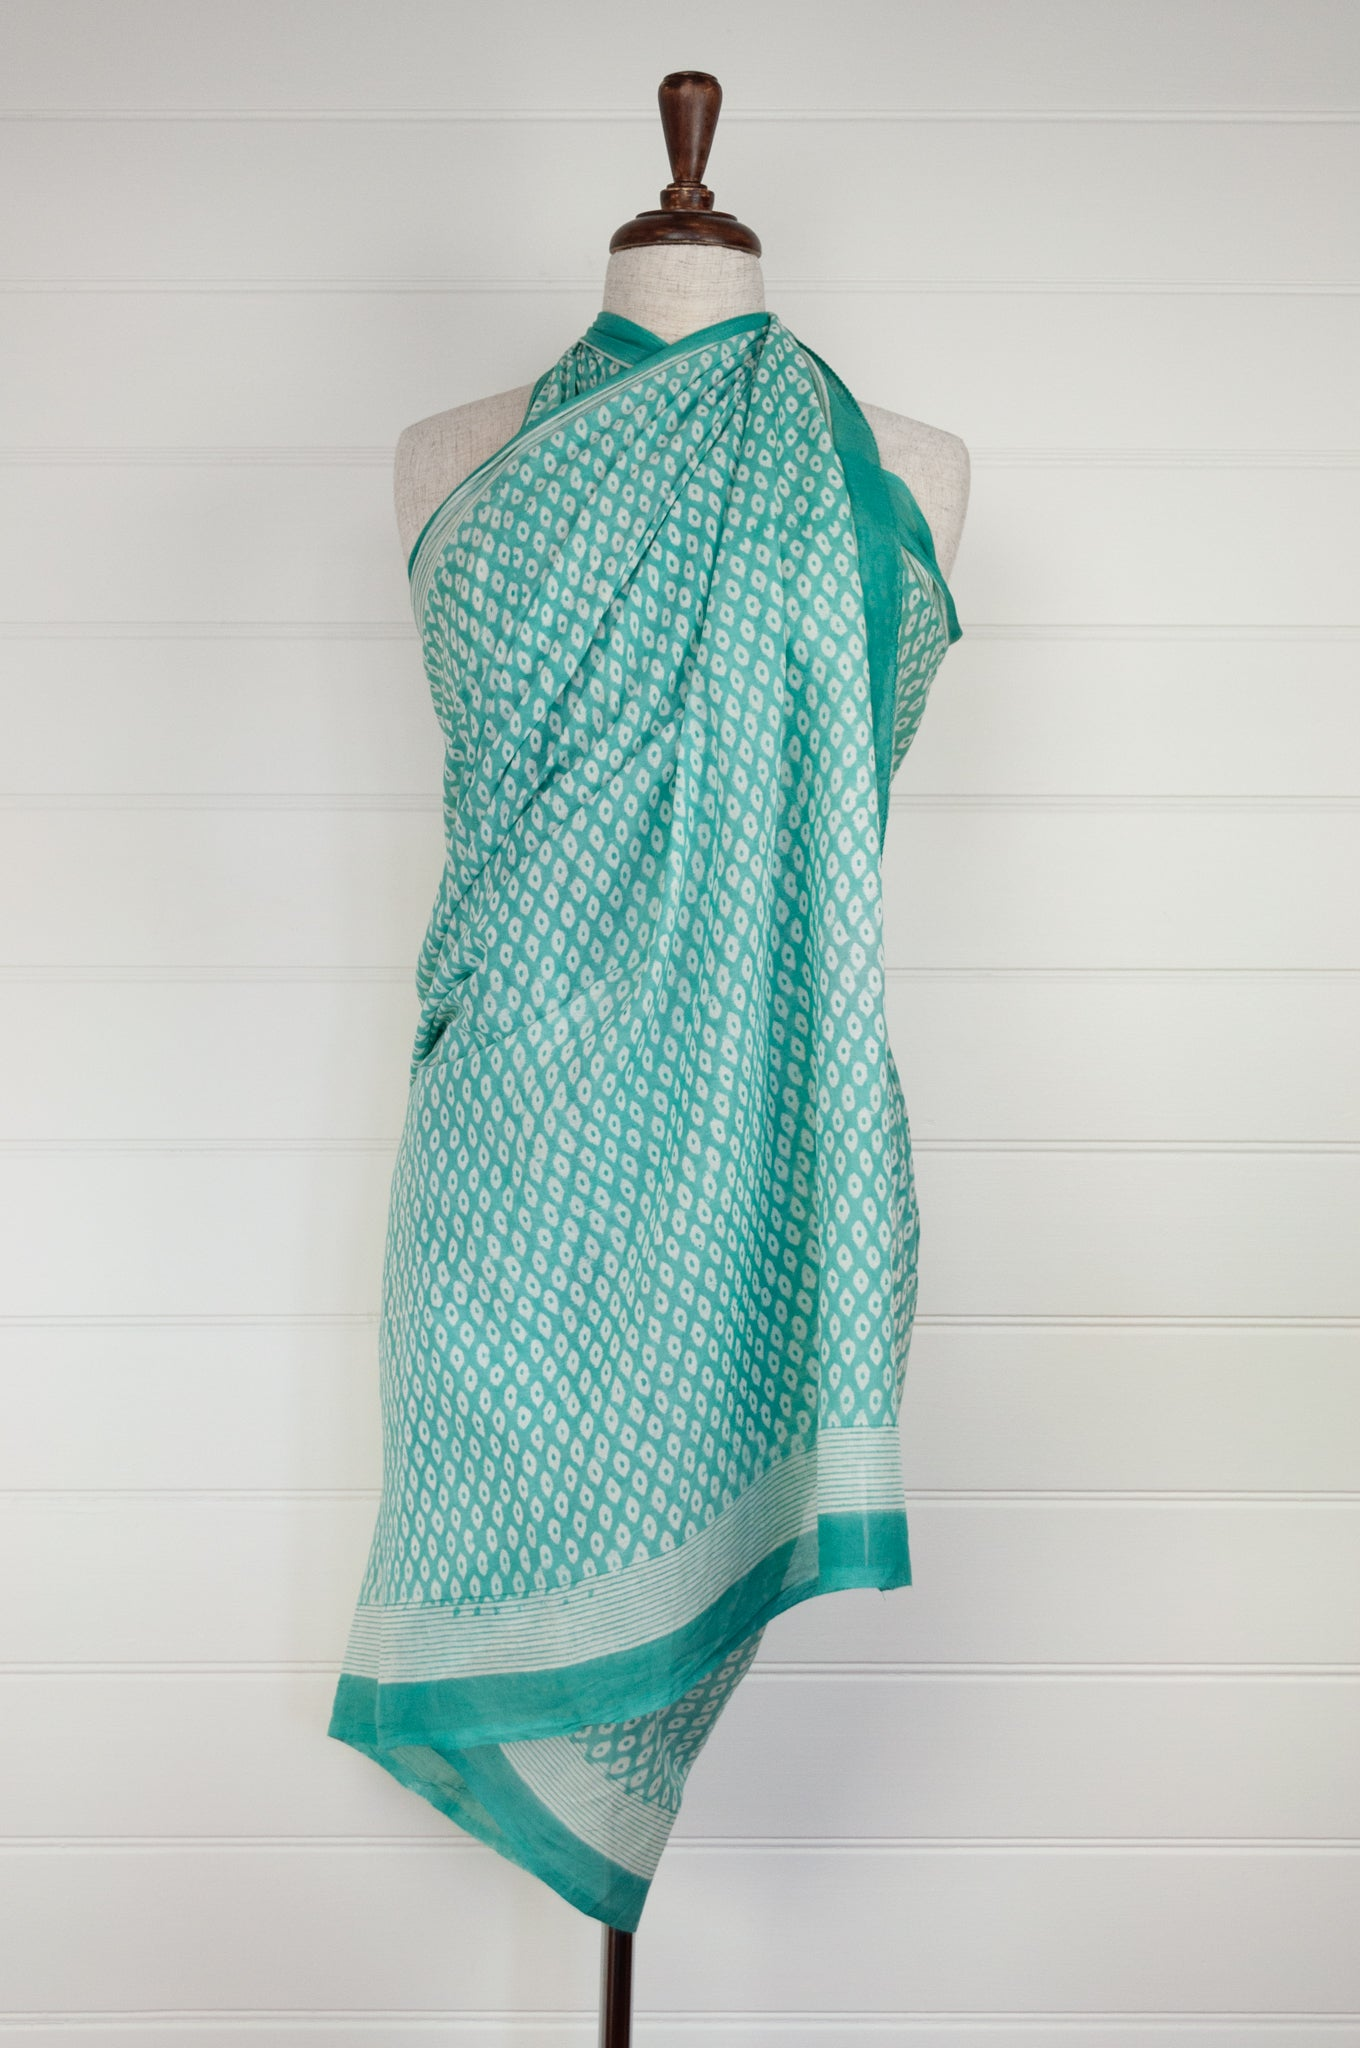 Cotton voile sarong, block printed by hand. White dots on a fresh aqua base.